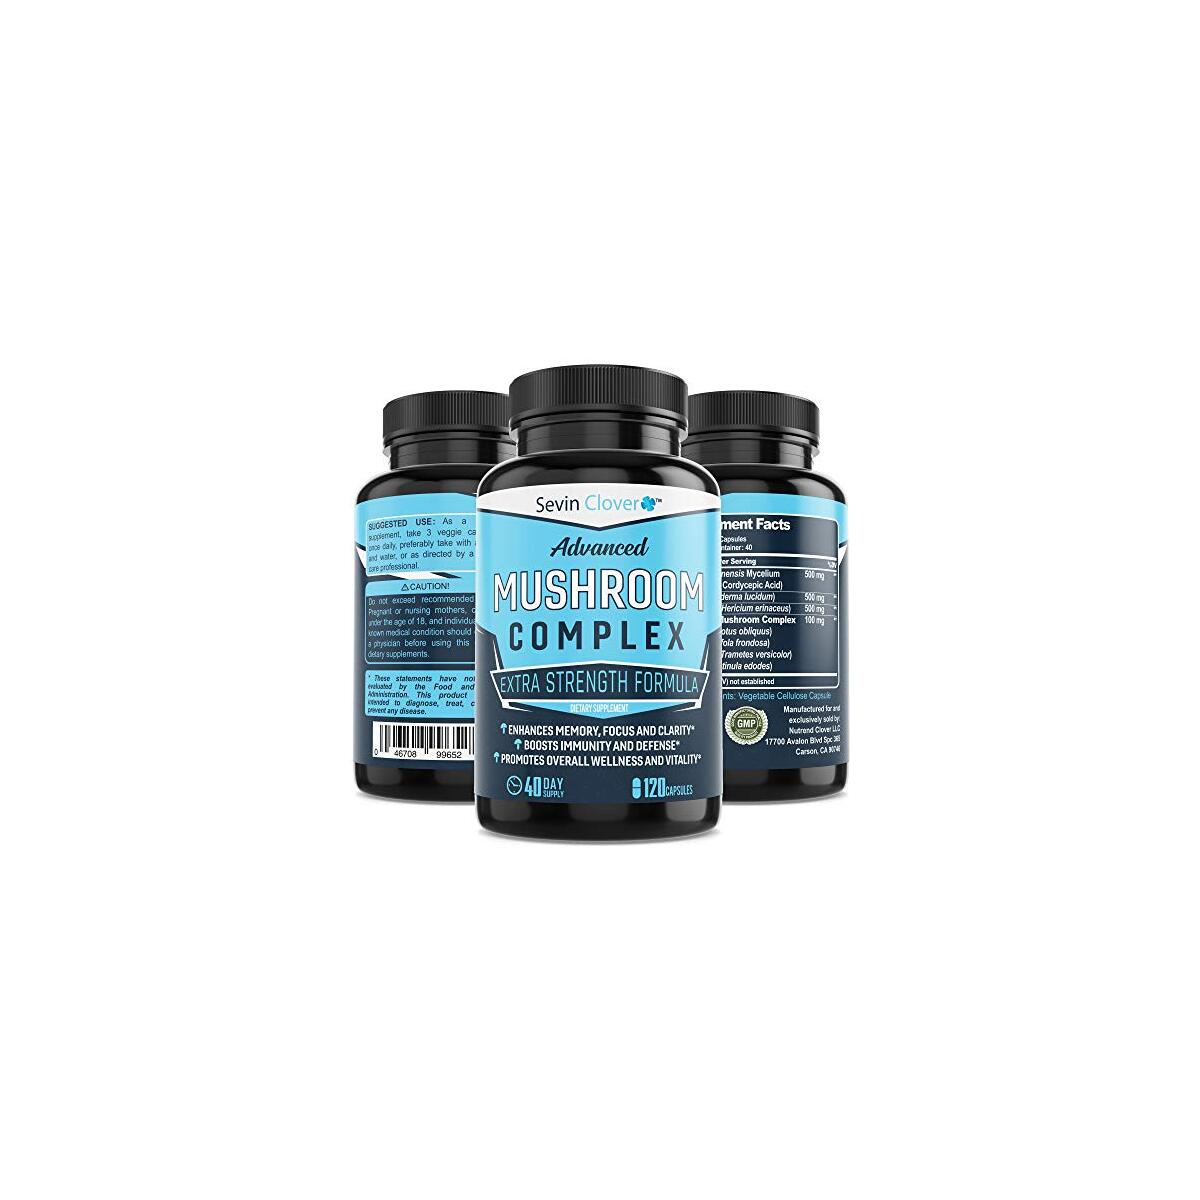 Mushroom Supplement Lions Mane Cordyceps - Organic Comprehensive Support for a Robust and Resilient Immune System | Mushroom Nootropic Brain Booster Complex for Energy and Focus - 120 Capsules 1600mg